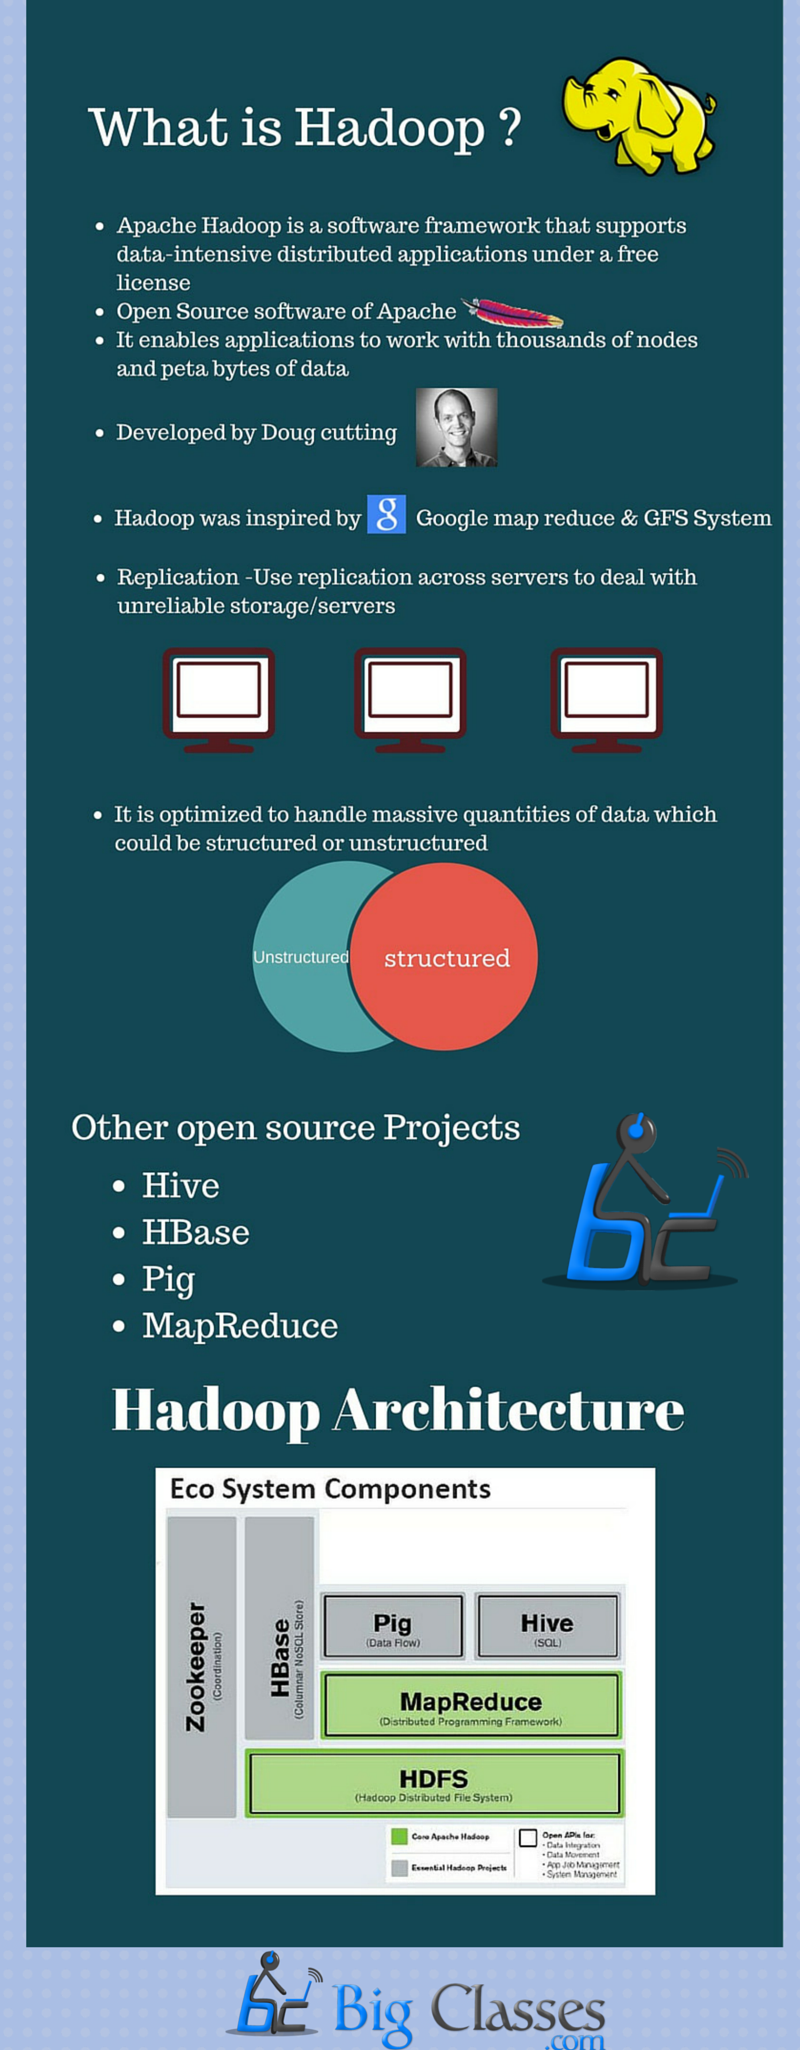 basic things to know about Hadoop